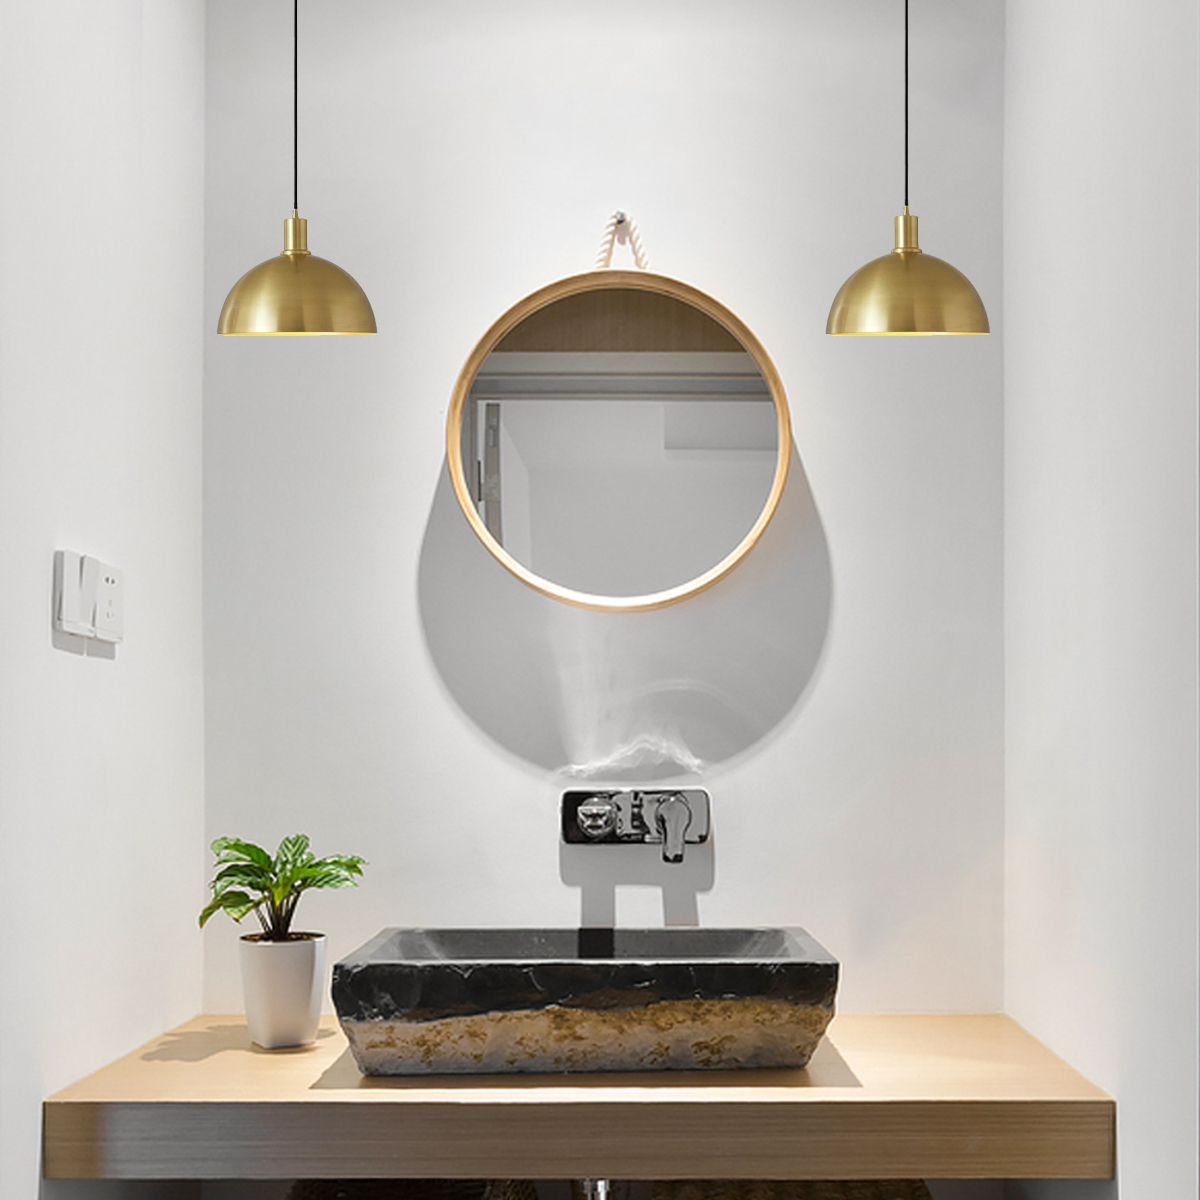 Brass Dome Pendant Light Kitchen Lamp Dining Room Cafe Led Lighting Fixtures Us Ebay